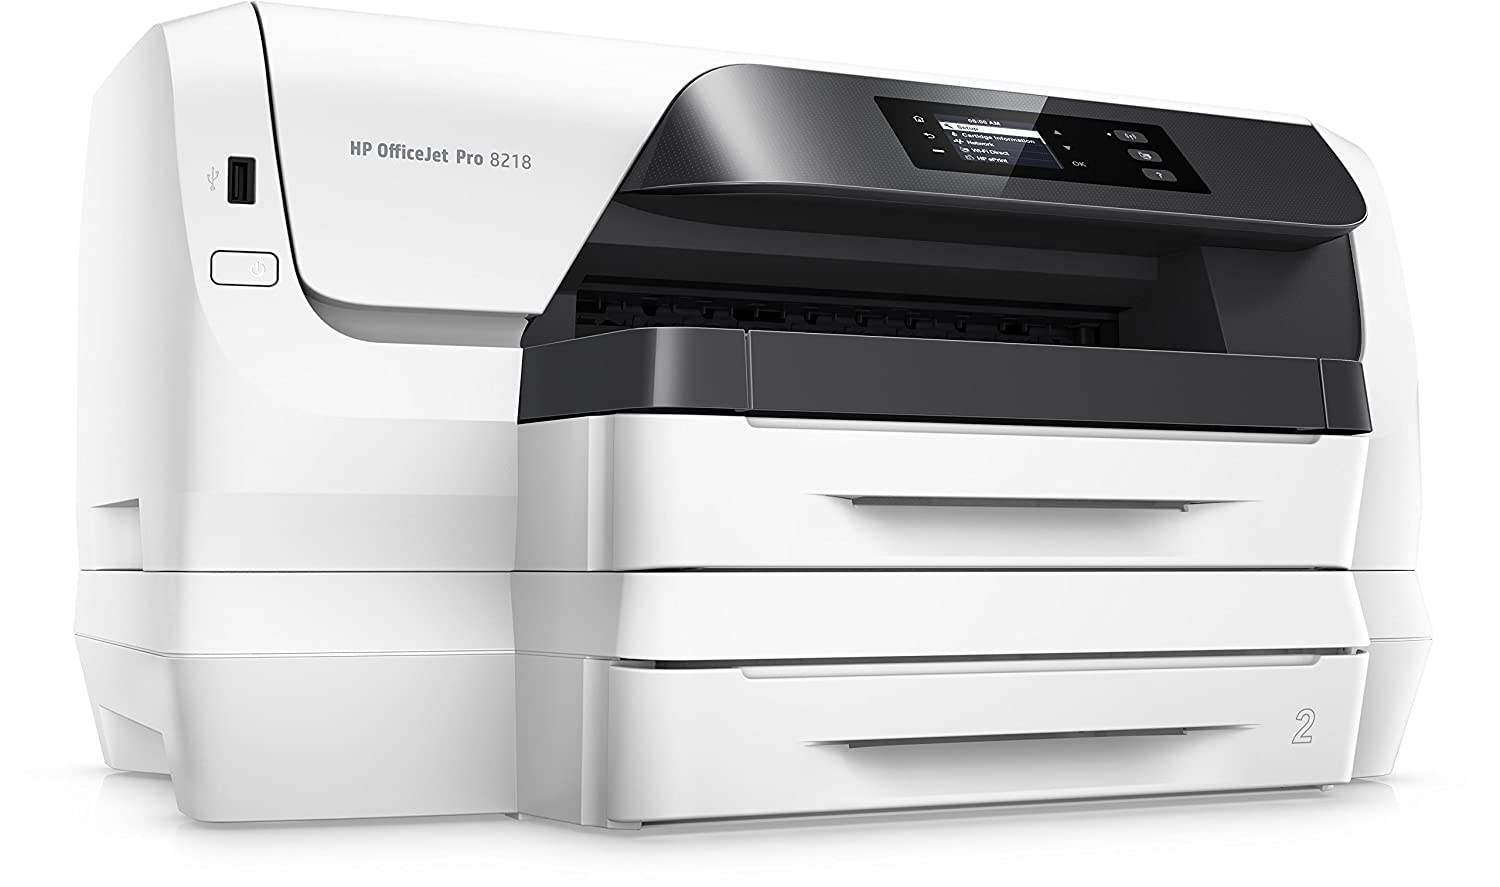 Hp Officejet Pro 8210 - Impresora, Compatible con HP PCL 6, HP PCL ...